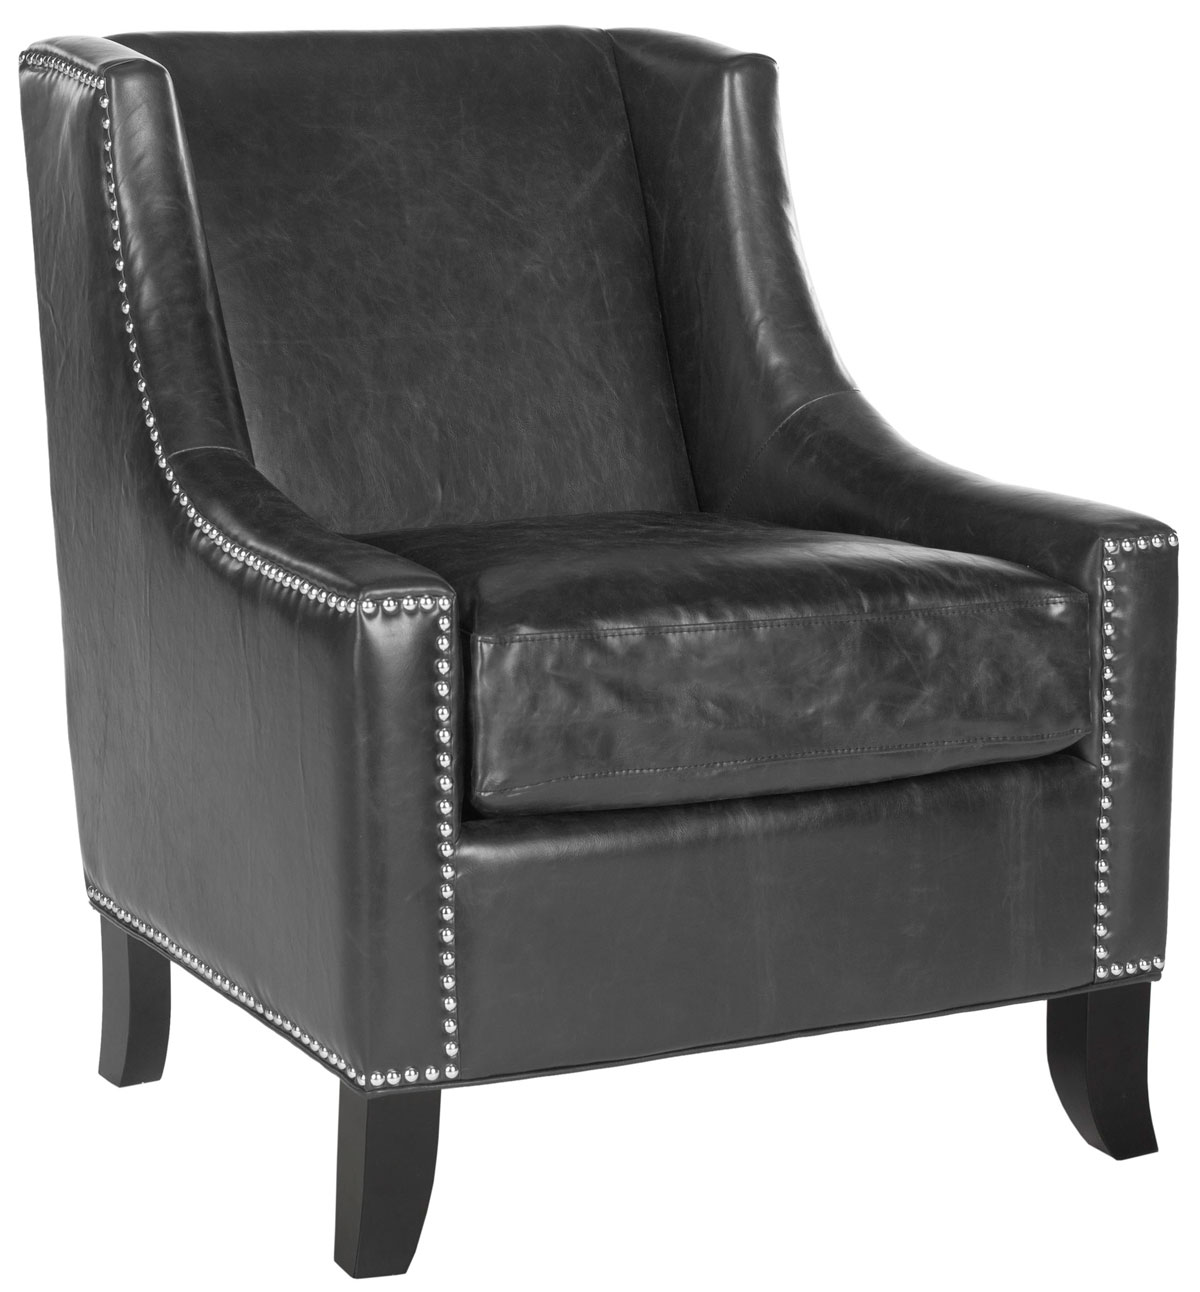 DANIEL CLUB CHAIR   SILVER NAIL HEADS MCR4733A ACCENT CHAIRS